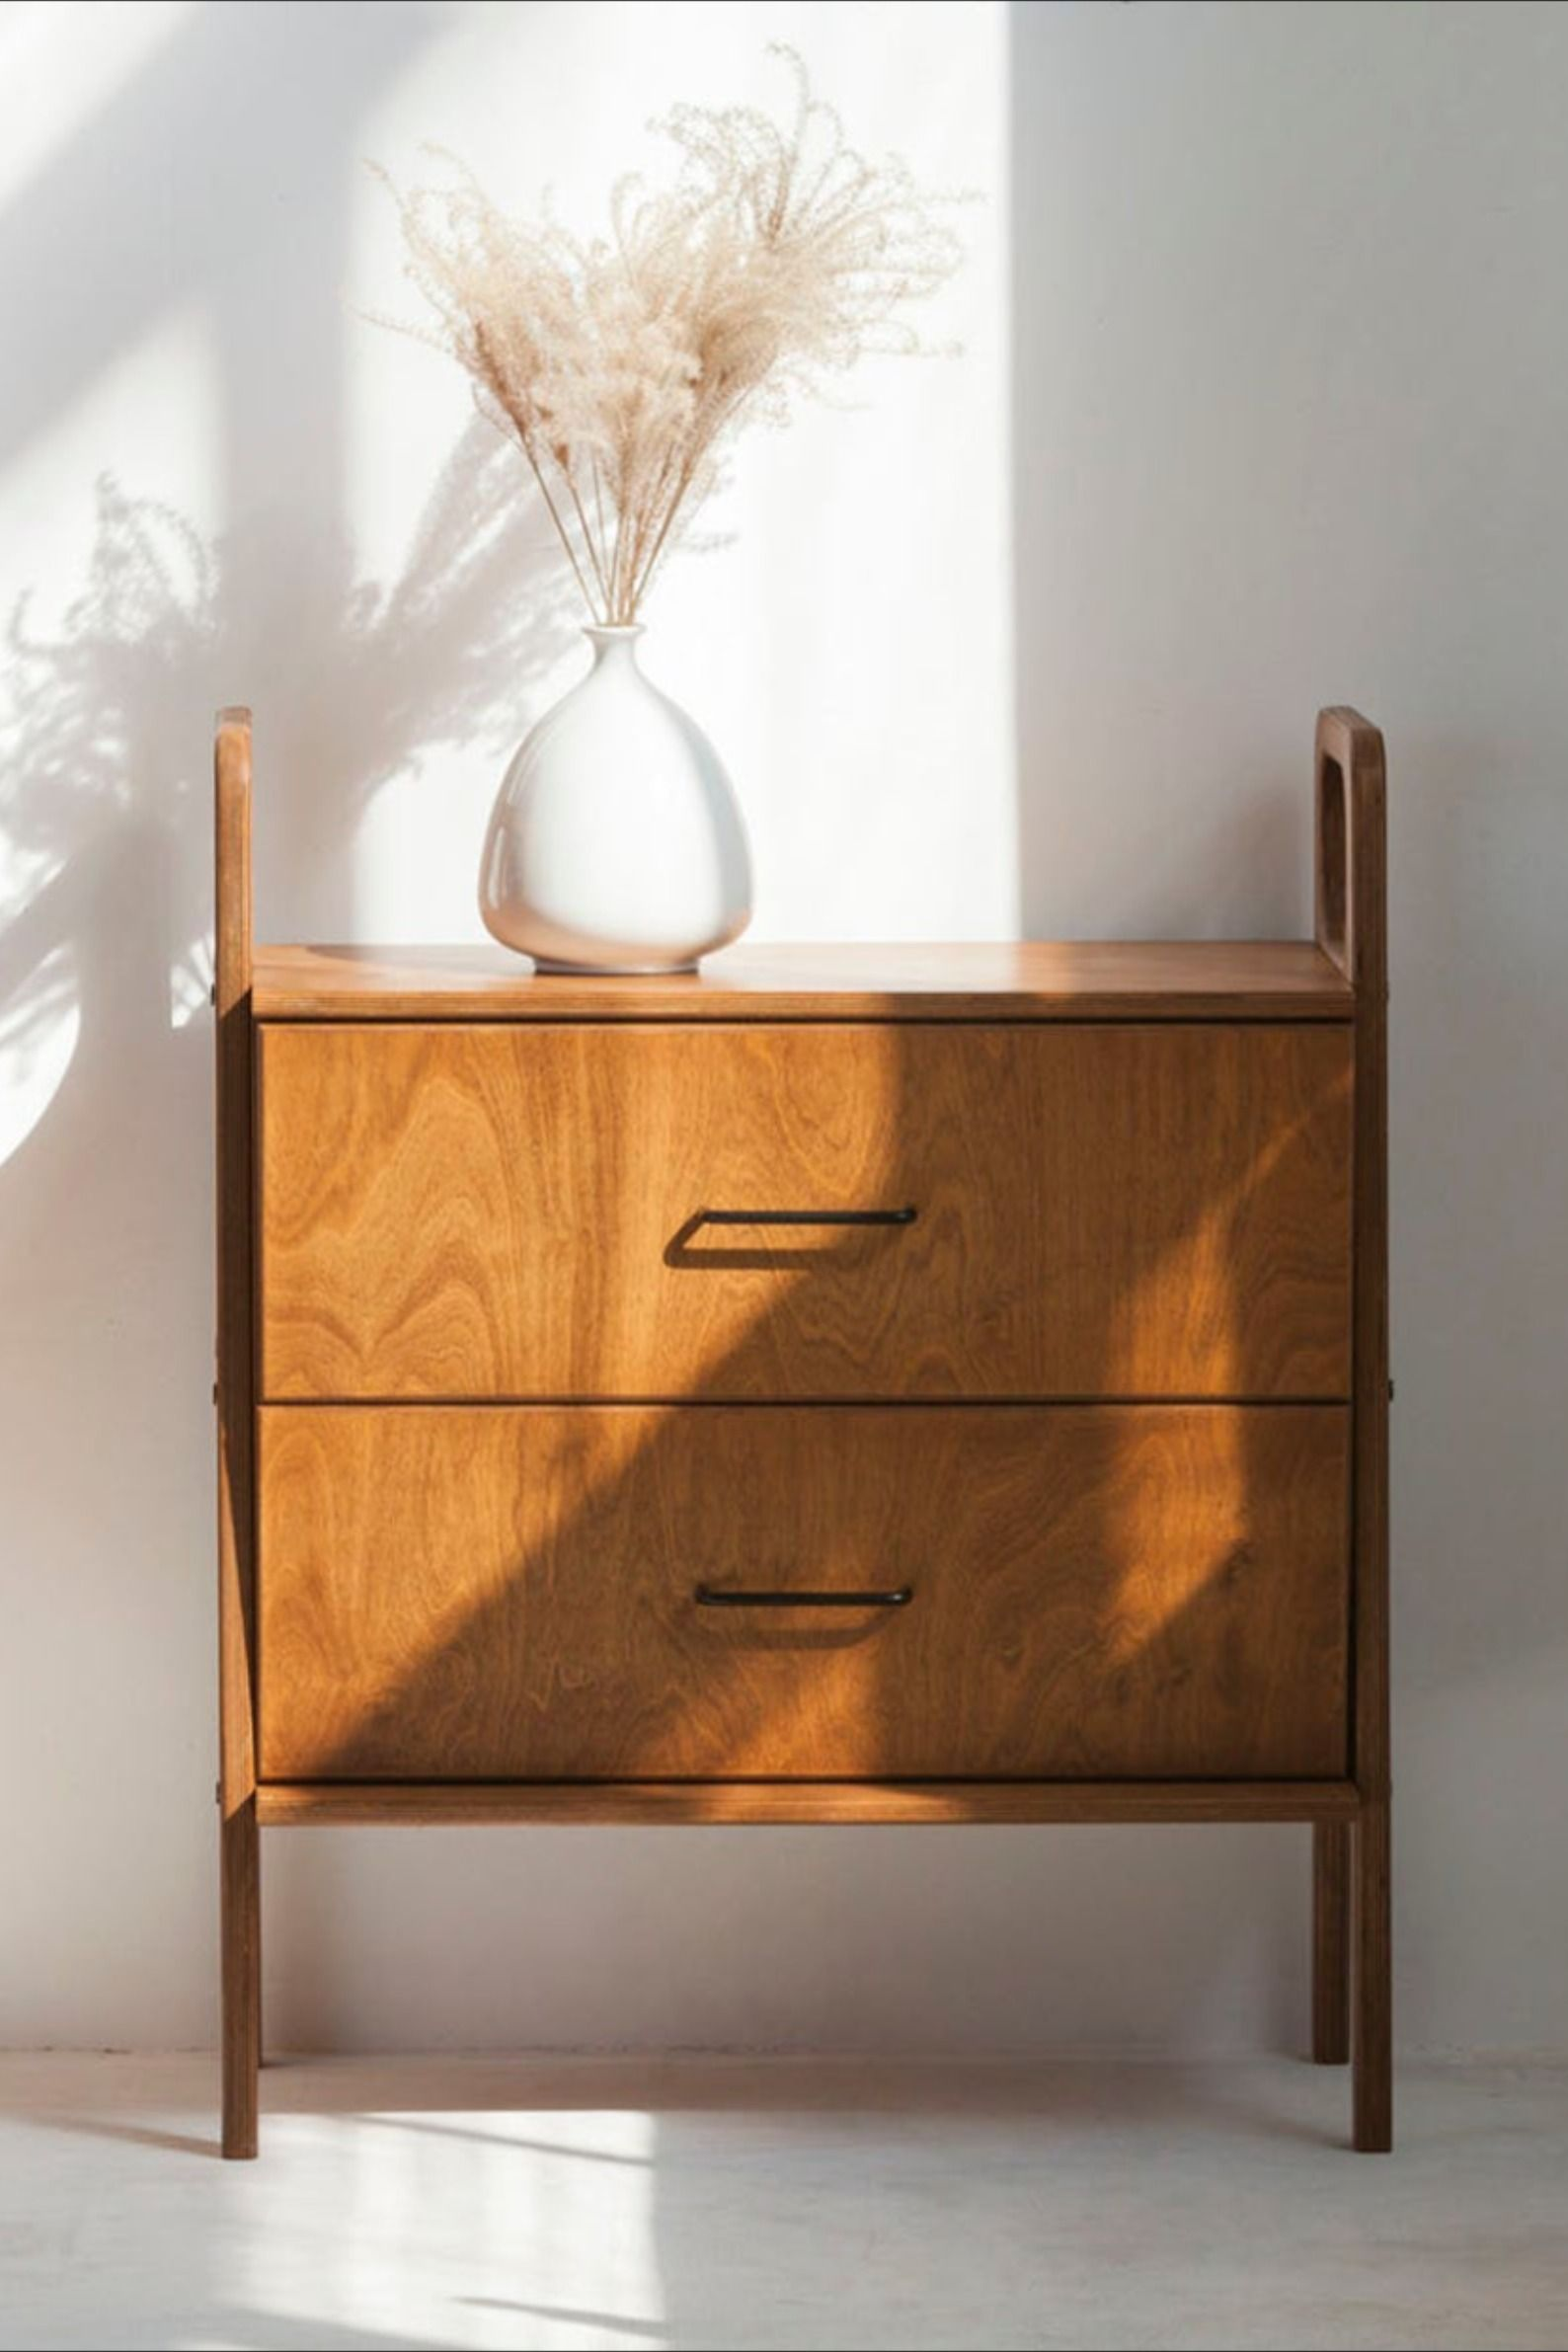 Bedside Table Scandinavian Mid Century Modern Retro Style With 2 Drawers Wood Nightstand Nightstand Scandinavian Bedside Table In 2020 Bedside Table Scandinavian Midcentury Bedside Table Scandinavian Mid Century Modern